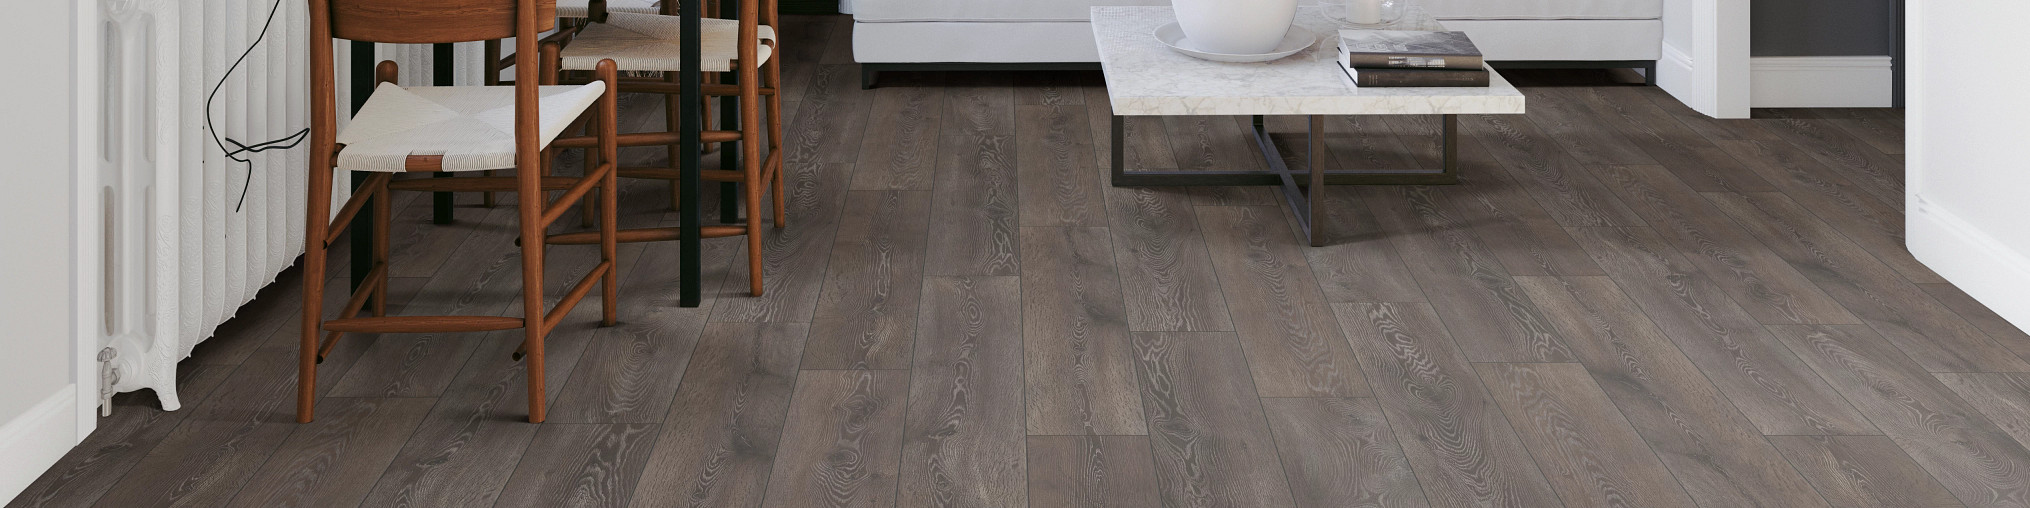 Laminate-Timeless-SL447-07727-Dynamic-Living-Room-2021